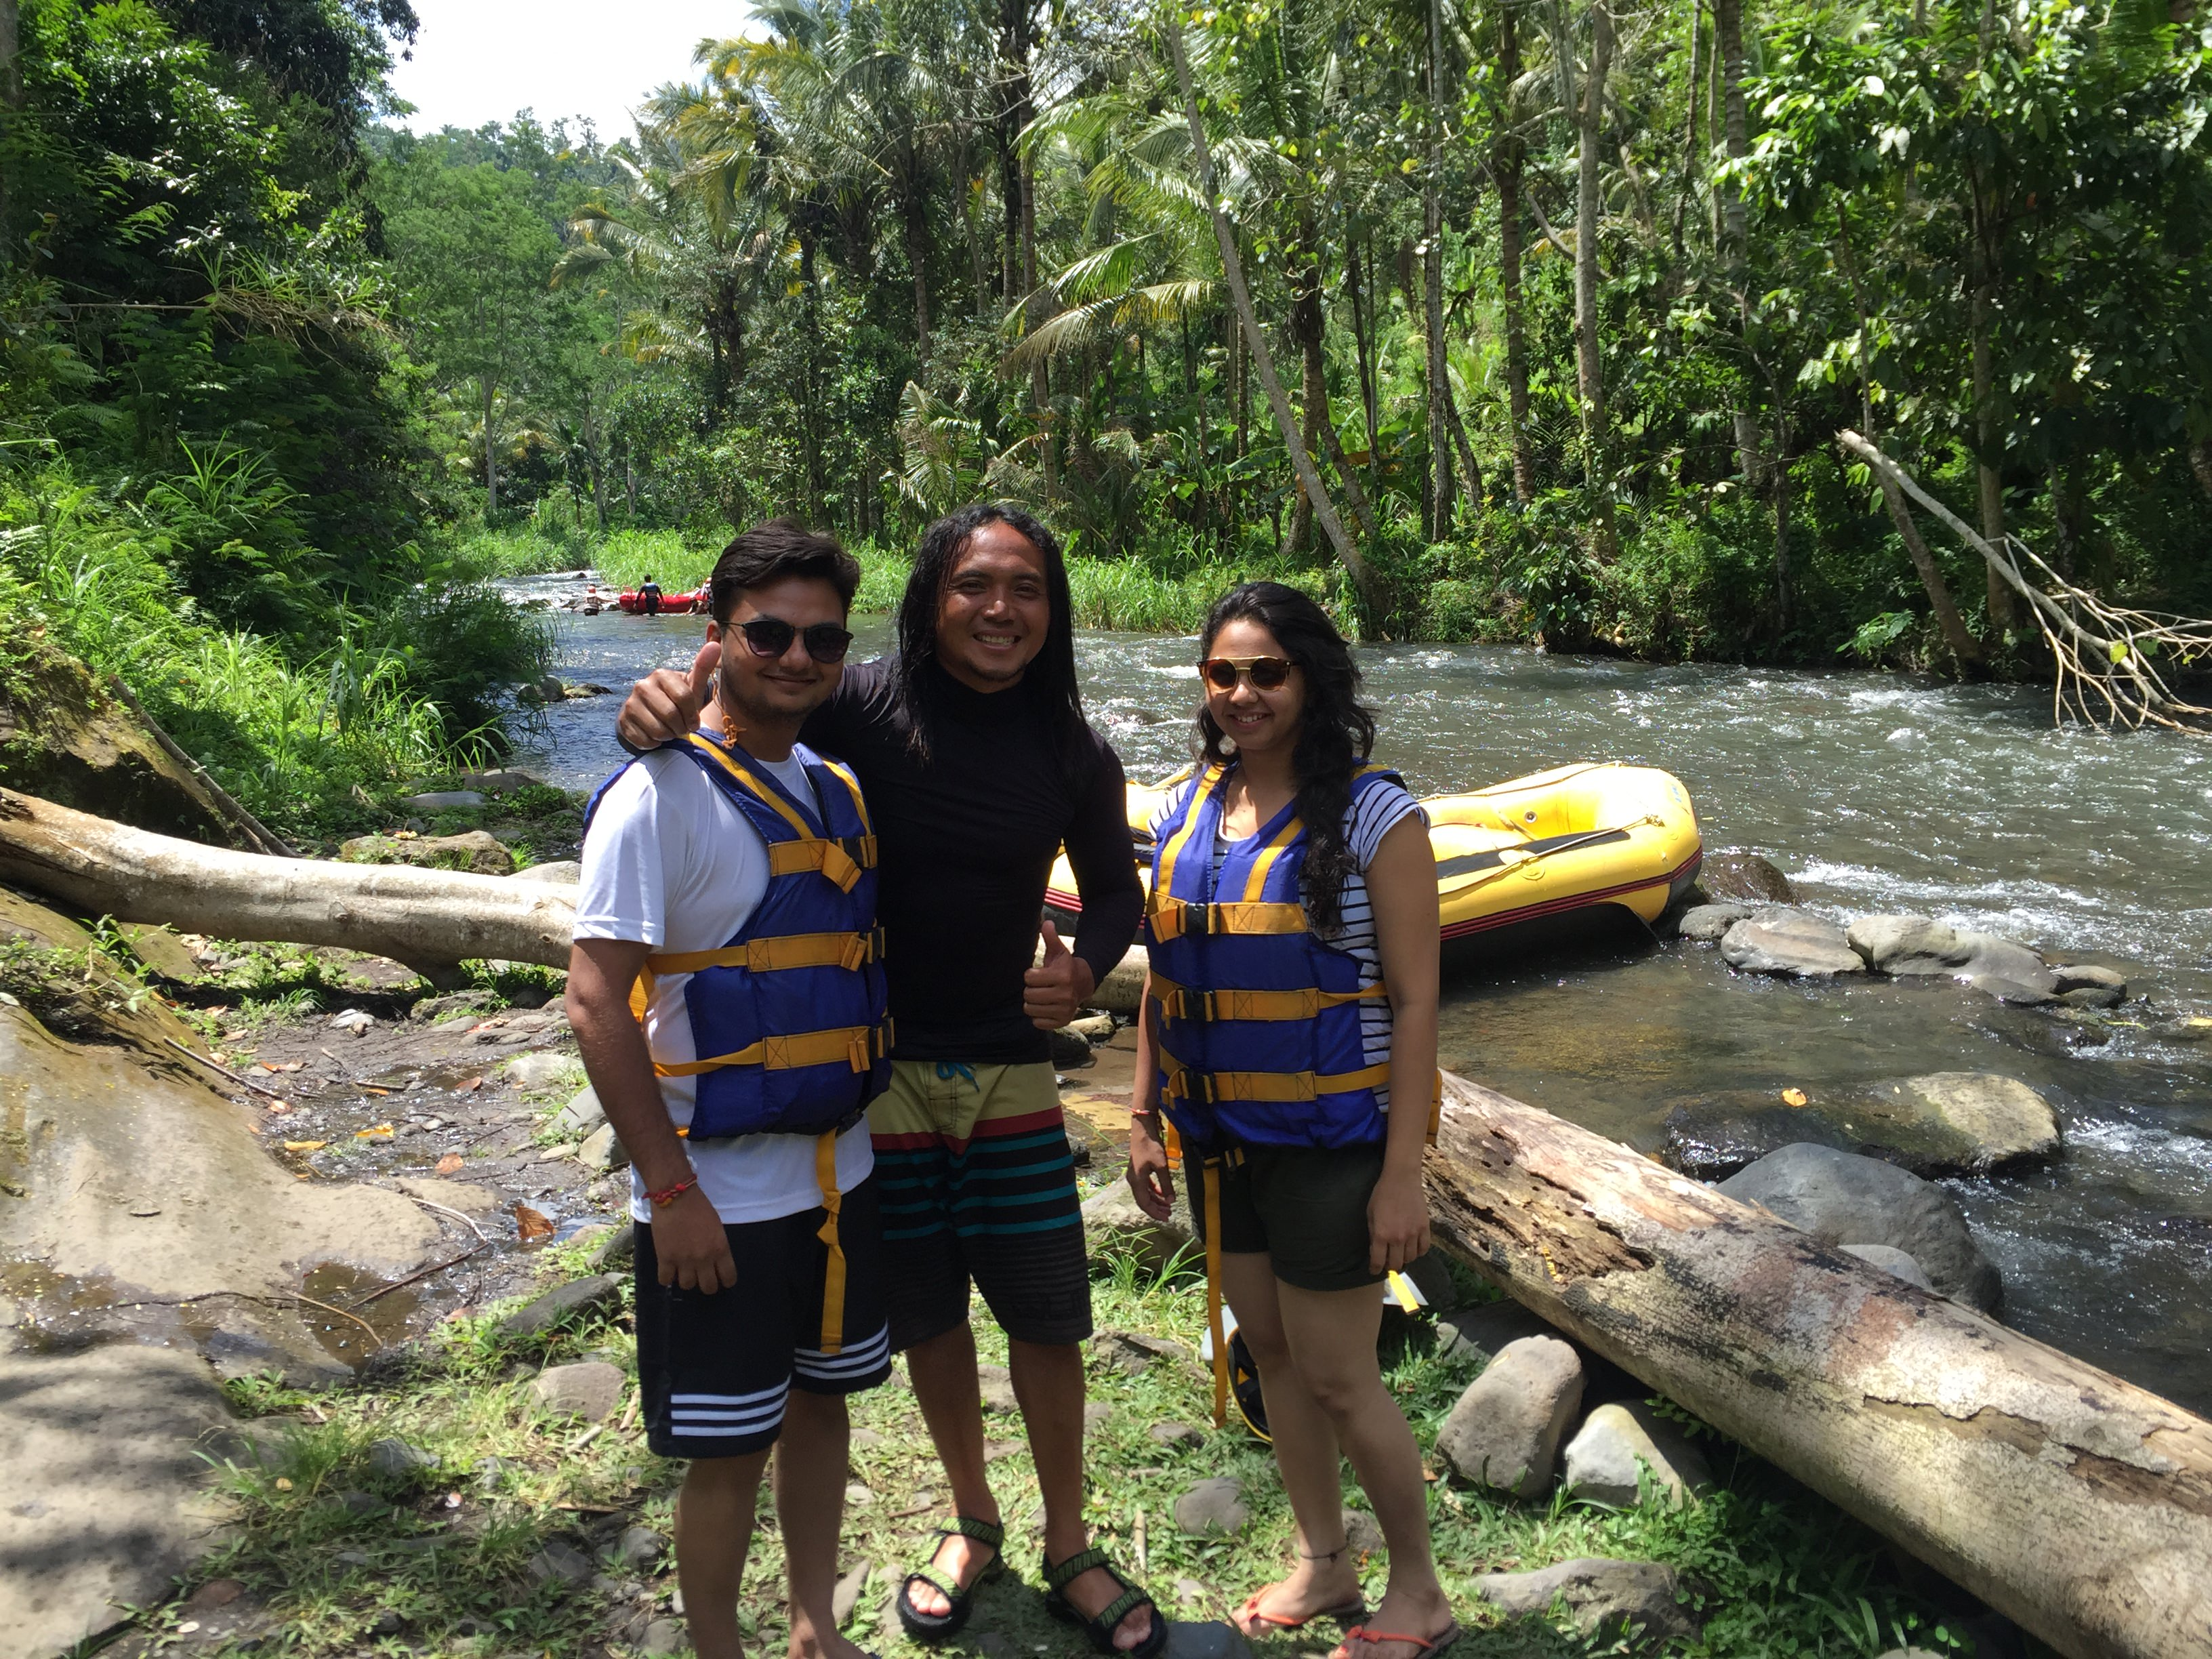 Alam Amazing Adventures : Wildest Experience of White Water River Rafting in Bali, Indonesia